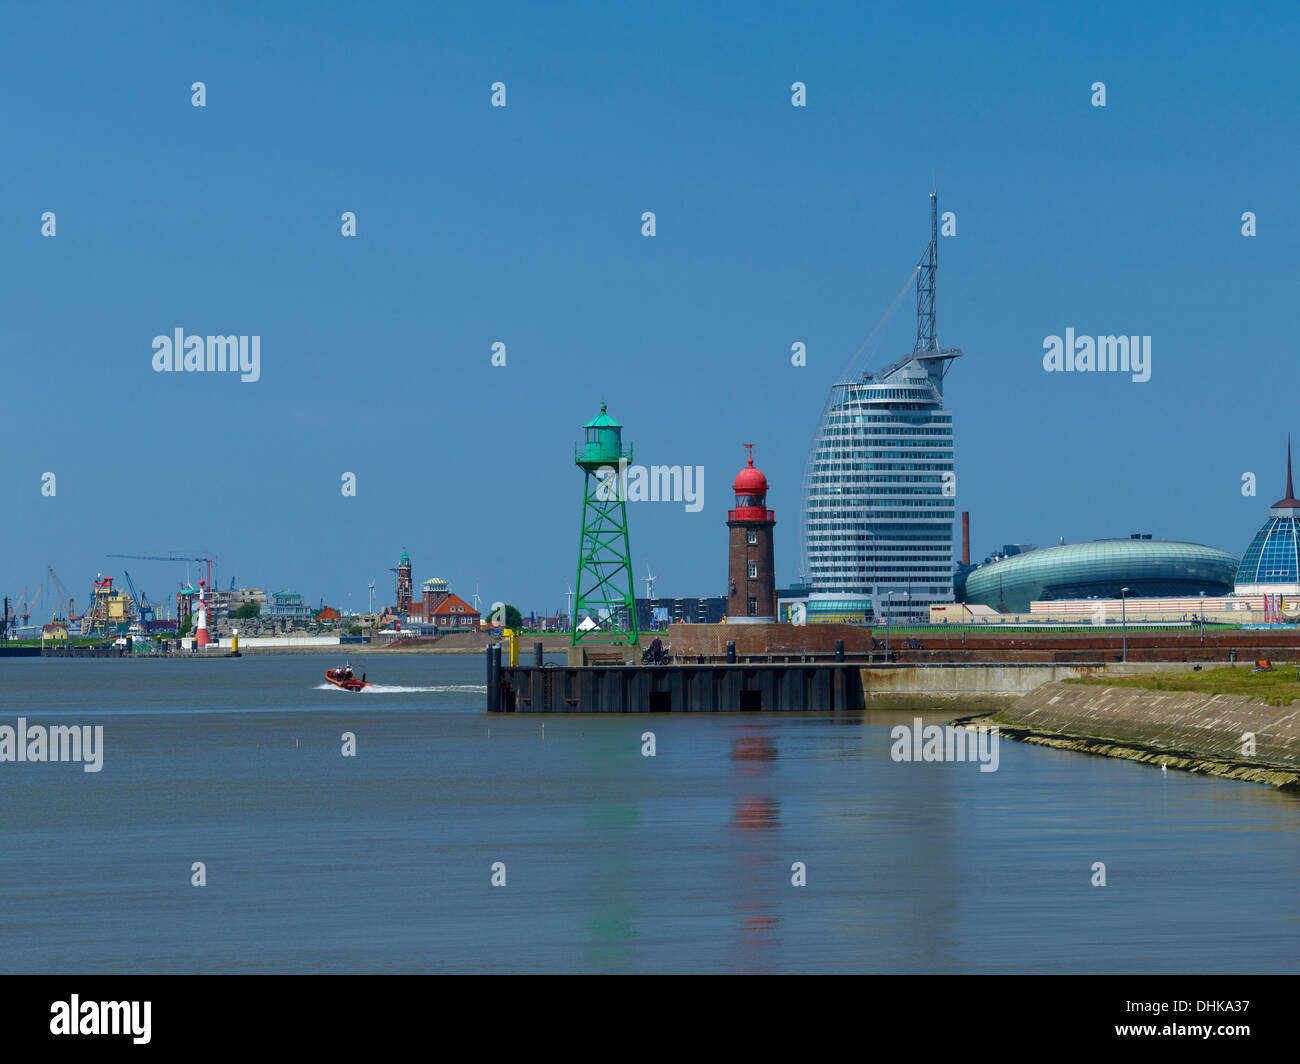 Fishing harbor with Atlantic Hotel Sail City, Klimahaus and Mediterraneo, Bremerhaven, Bremen, Germany - Stock Image